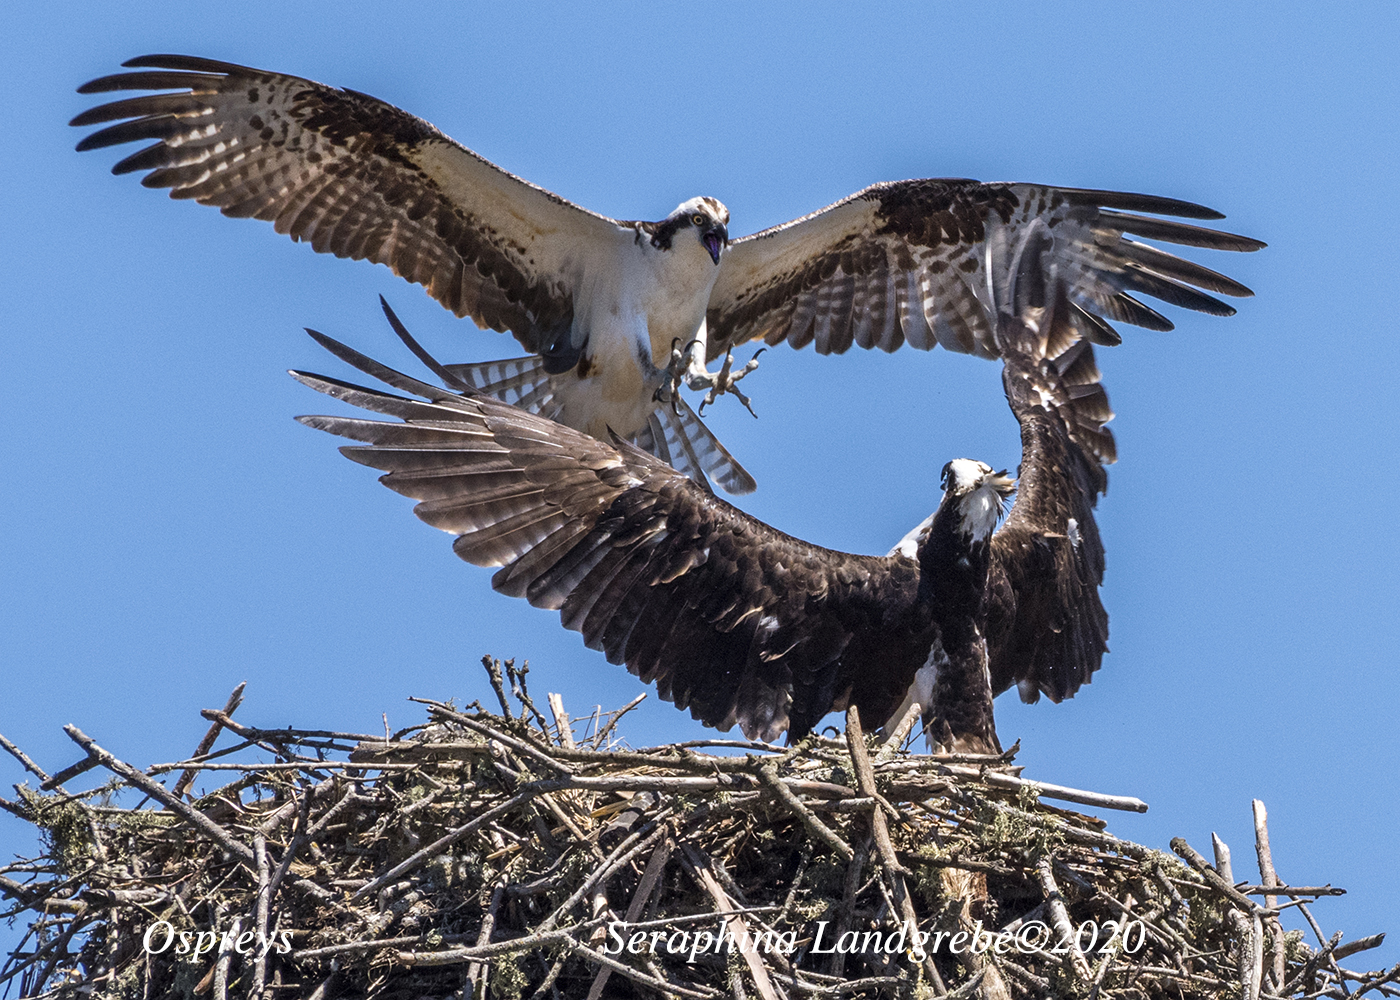 Two ospreys interacting above a nest.